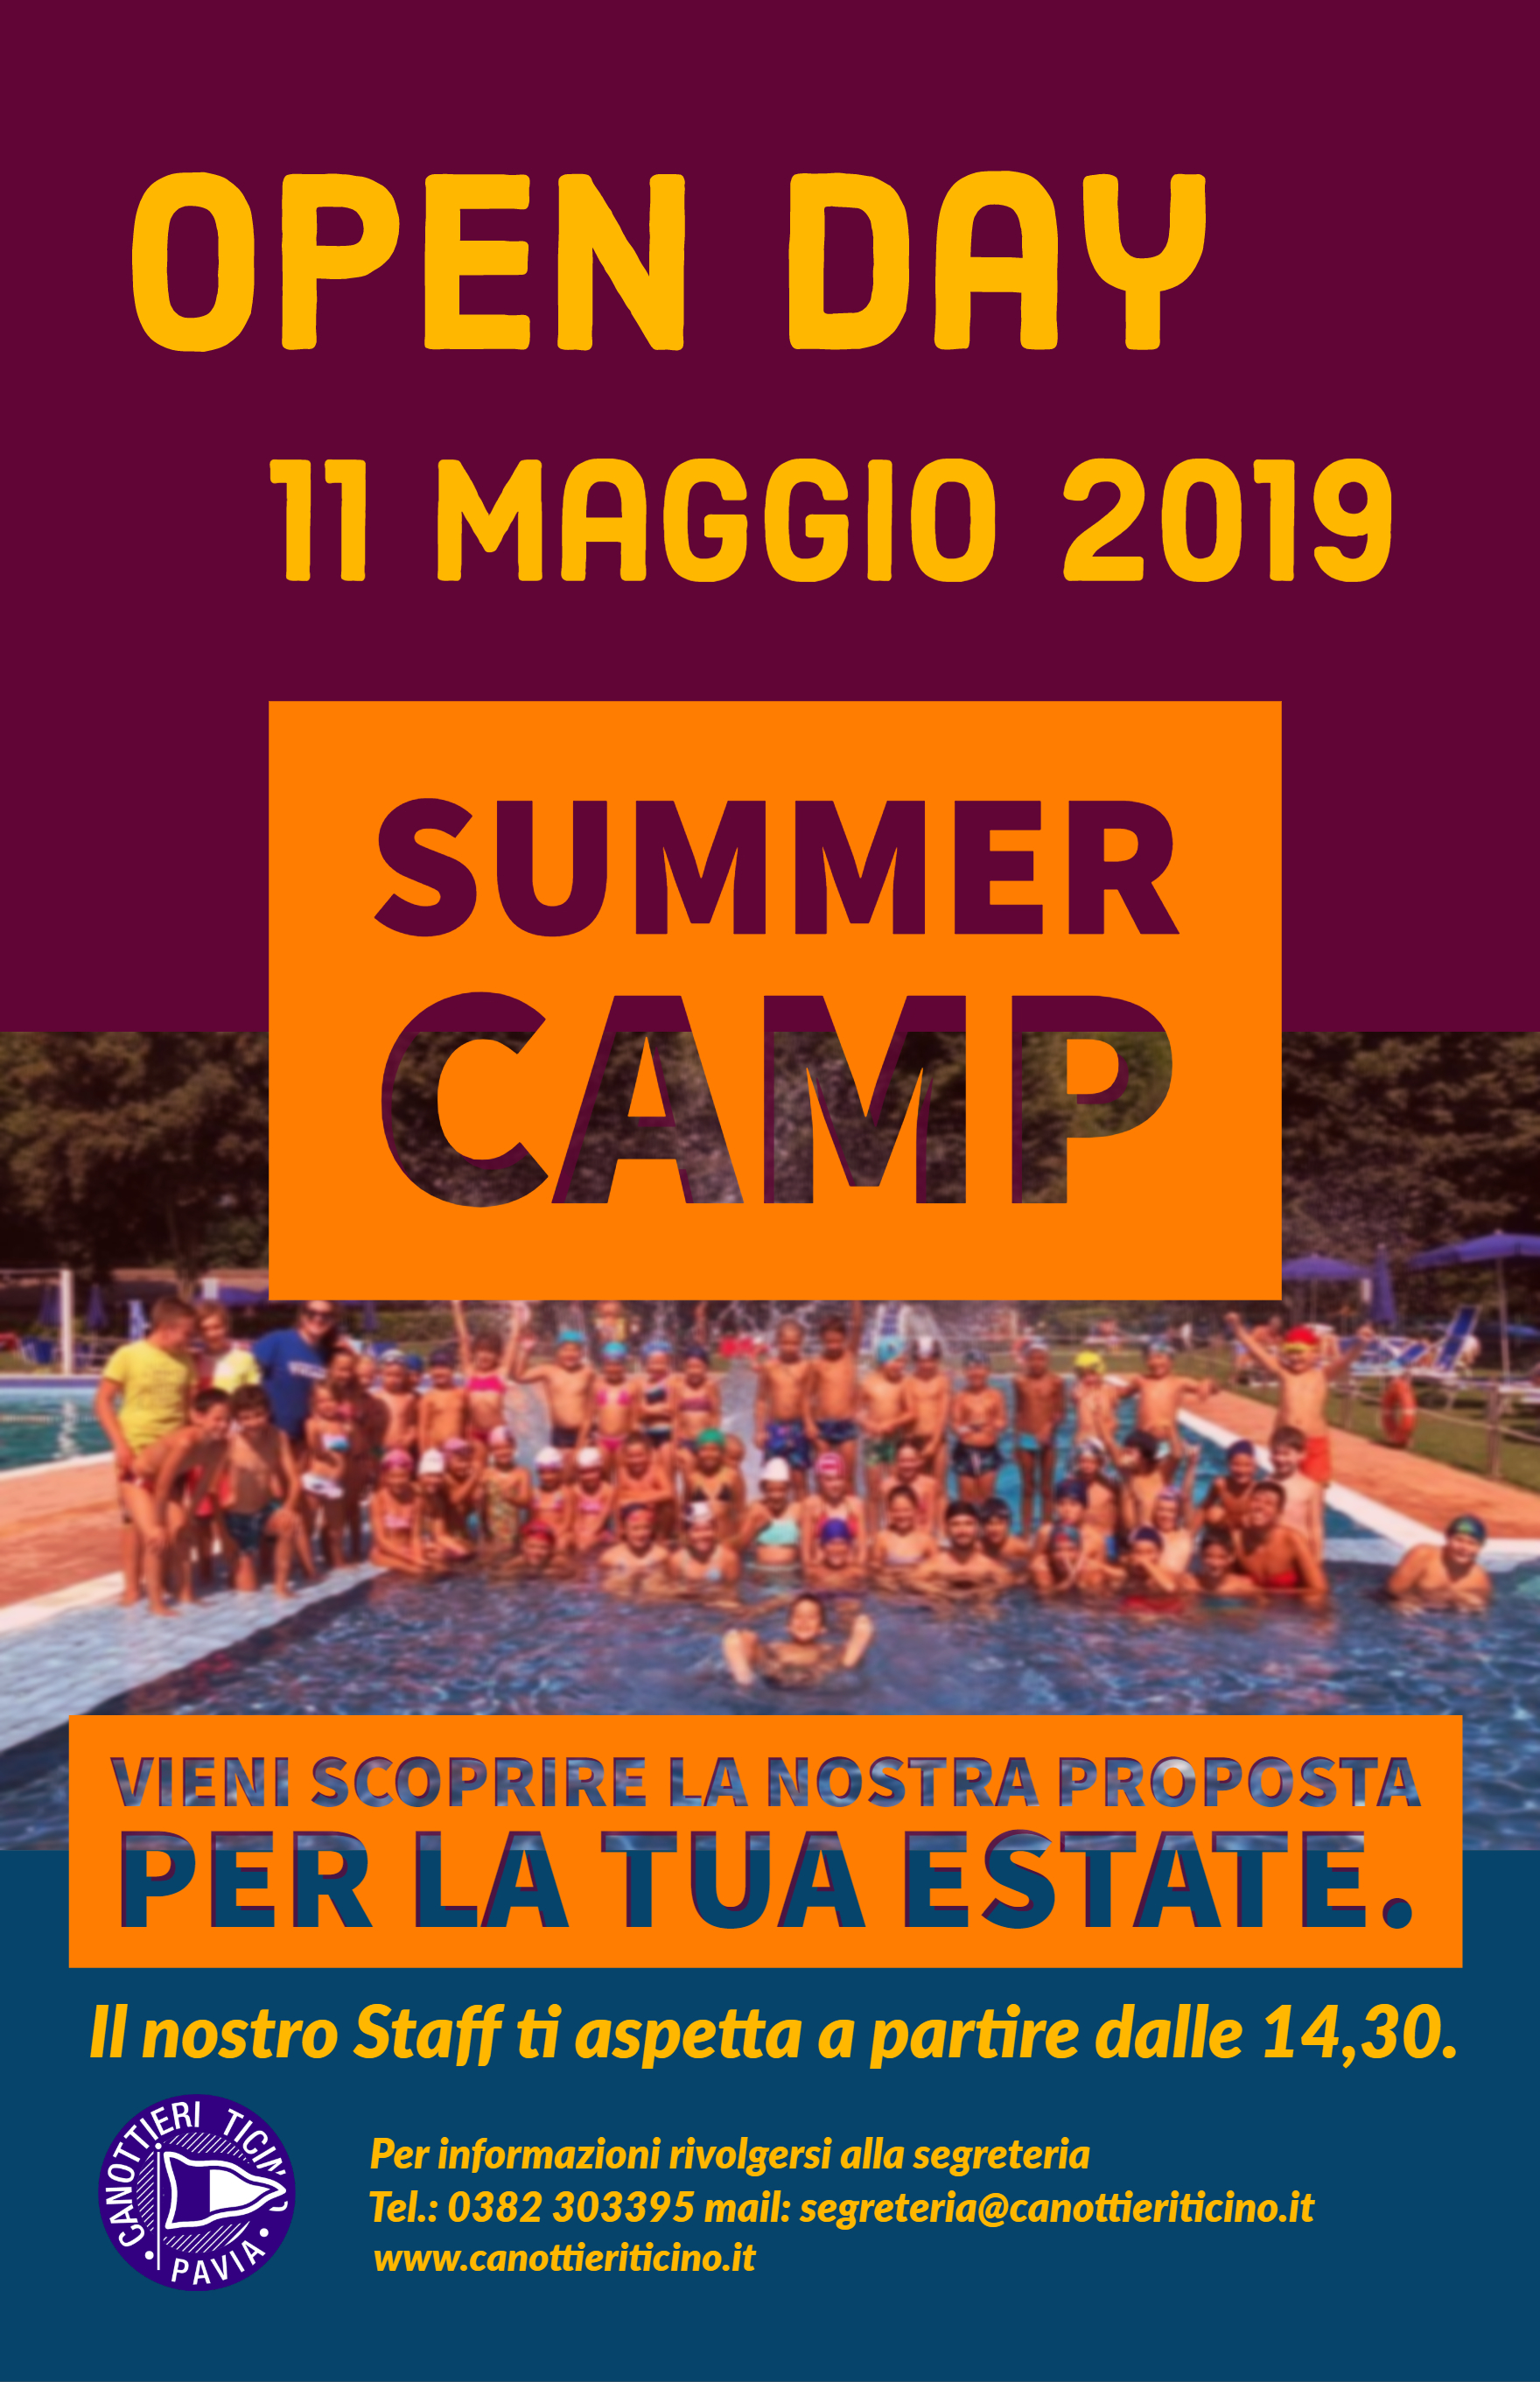 11.05.2019 – OPEN DAY SUMMER CAMP 2019